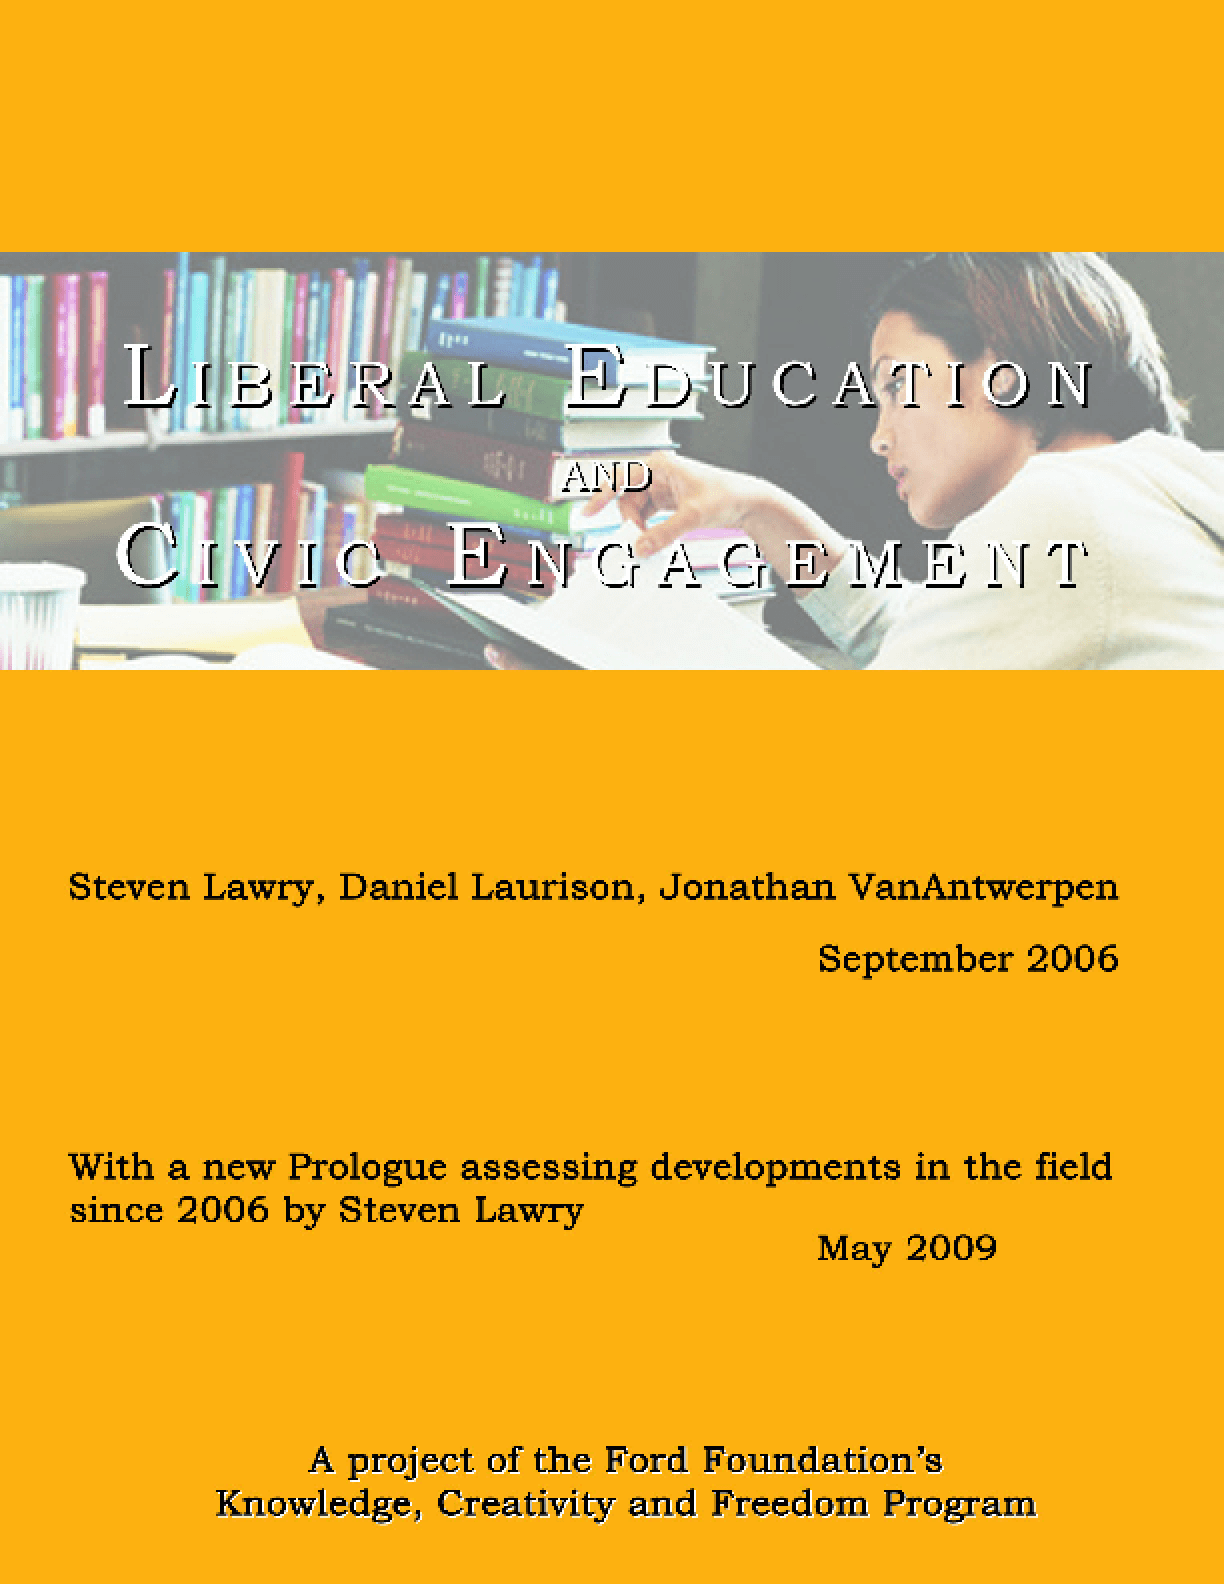 Liberal Education and Civic Engagement: A Project of the Ford Foundation's Knowledge, Creativity and Freedom Program